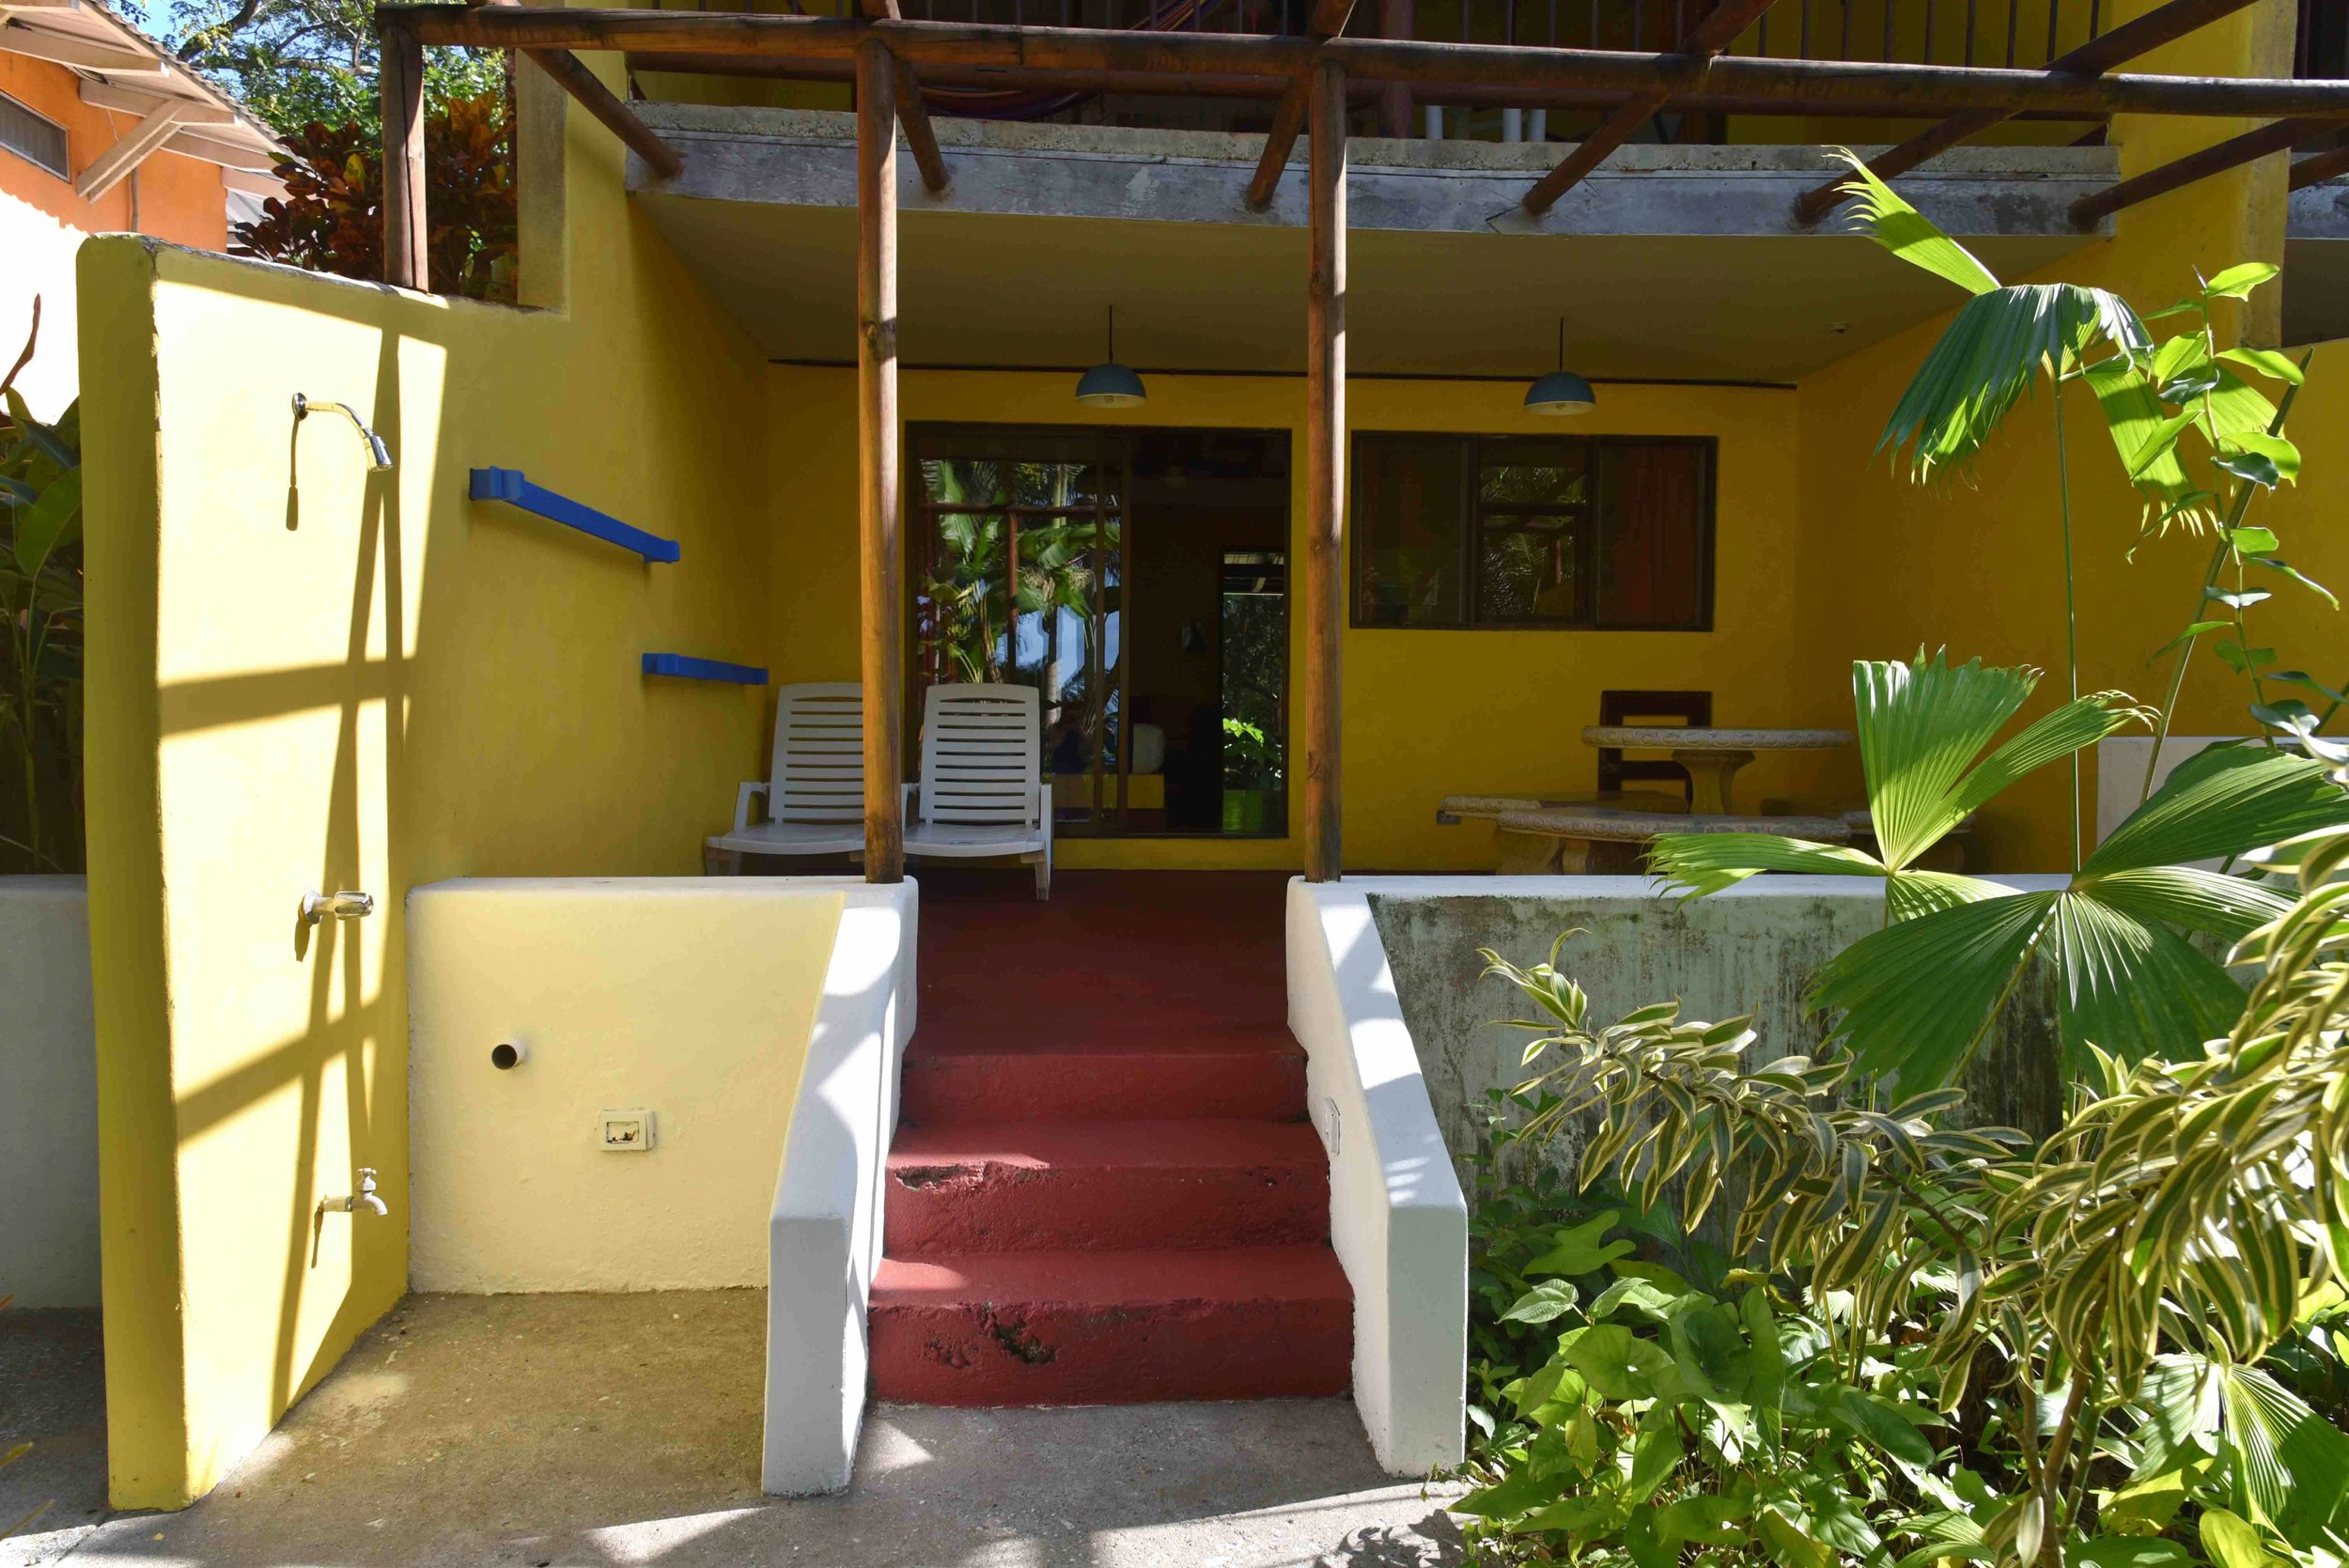 VILLAS DEL CARIBE COCLES PUERTO VIEJO  BREATHWORK YOGA RETREAT  MEG WILLIAMS  LISA D. (C)-7.jpg